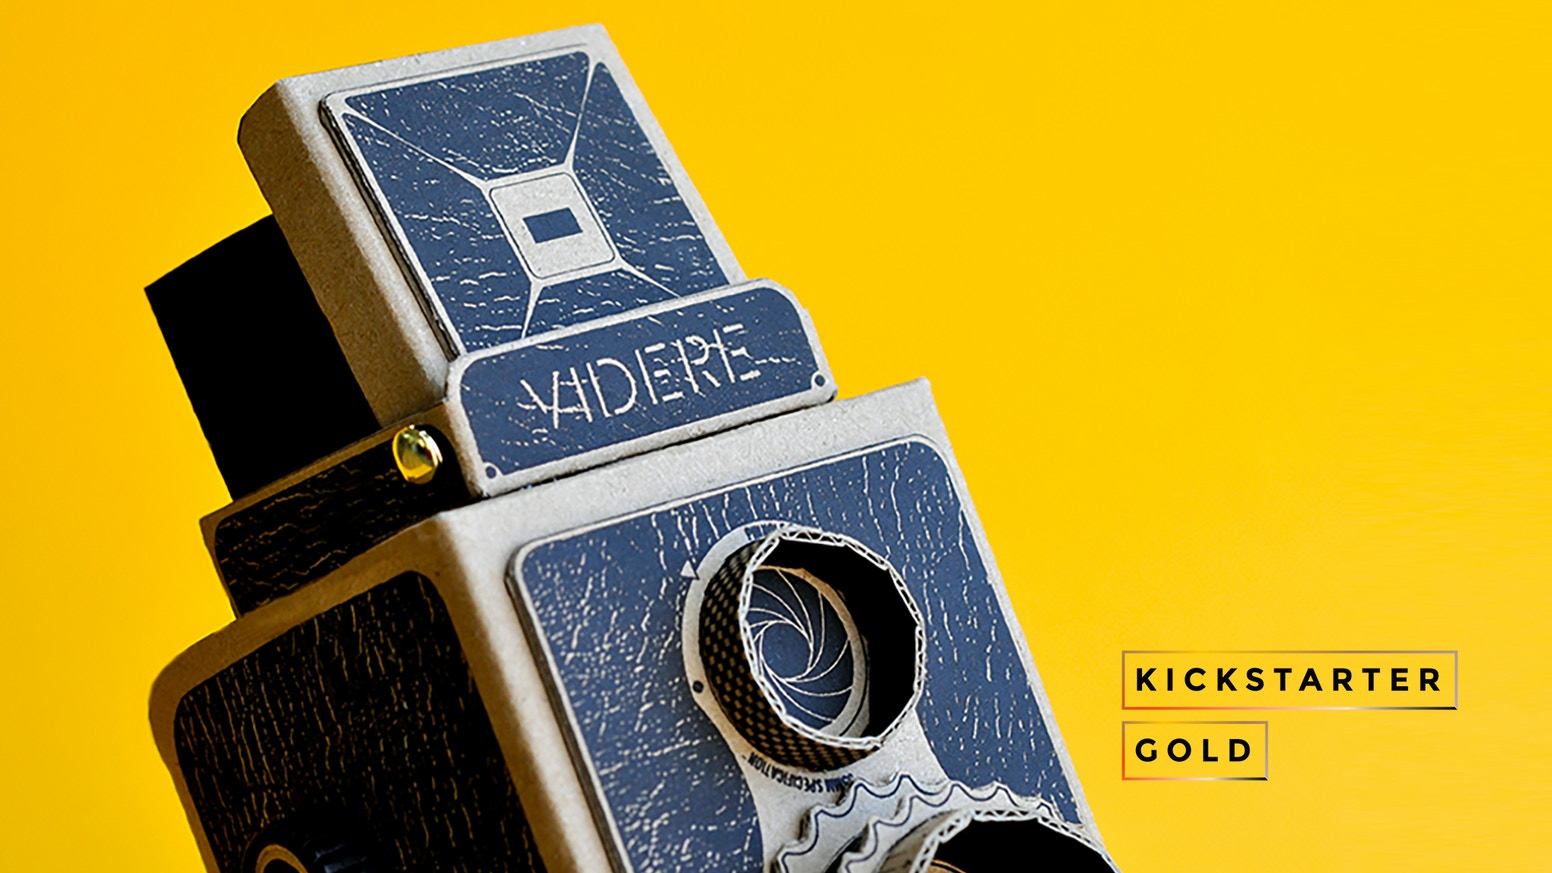 Kickstarter Gold Videre 35mm Diy Pinhole Camera Kit By Kelly Angood